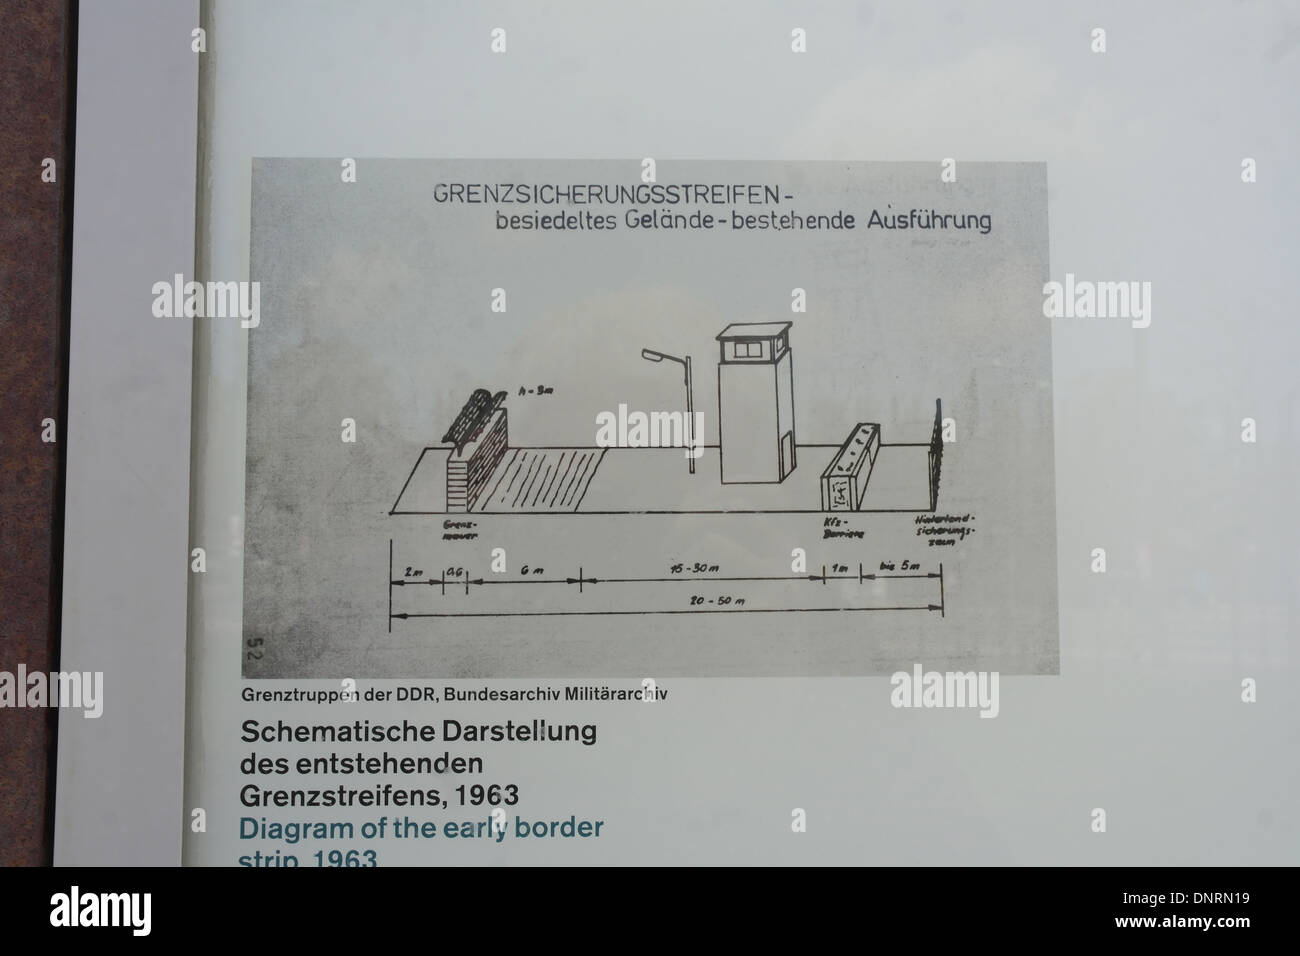 Diagram of the early border strip 1963 on an information panel at diagram of the early border strip 1963 on an information panel at the berlin wall memorial bernauer strasse germany ccuart Choice Image